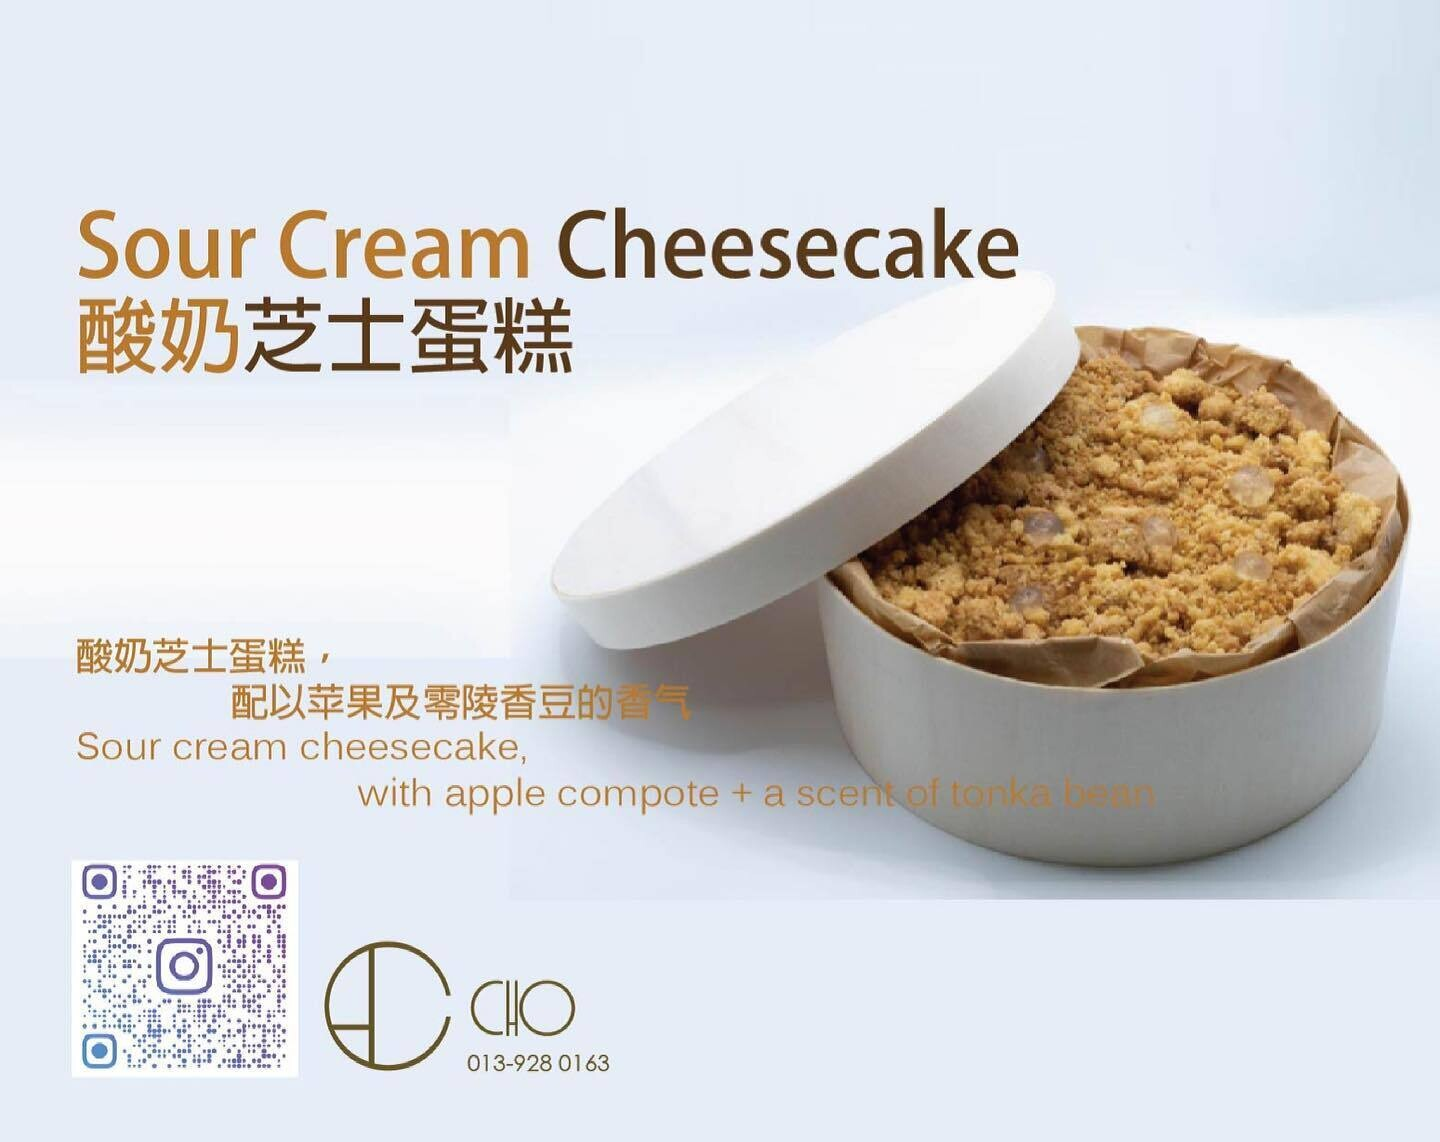 Sour Cream Cheesecake With Apple Tonka Crumble (By: CHO from JB)